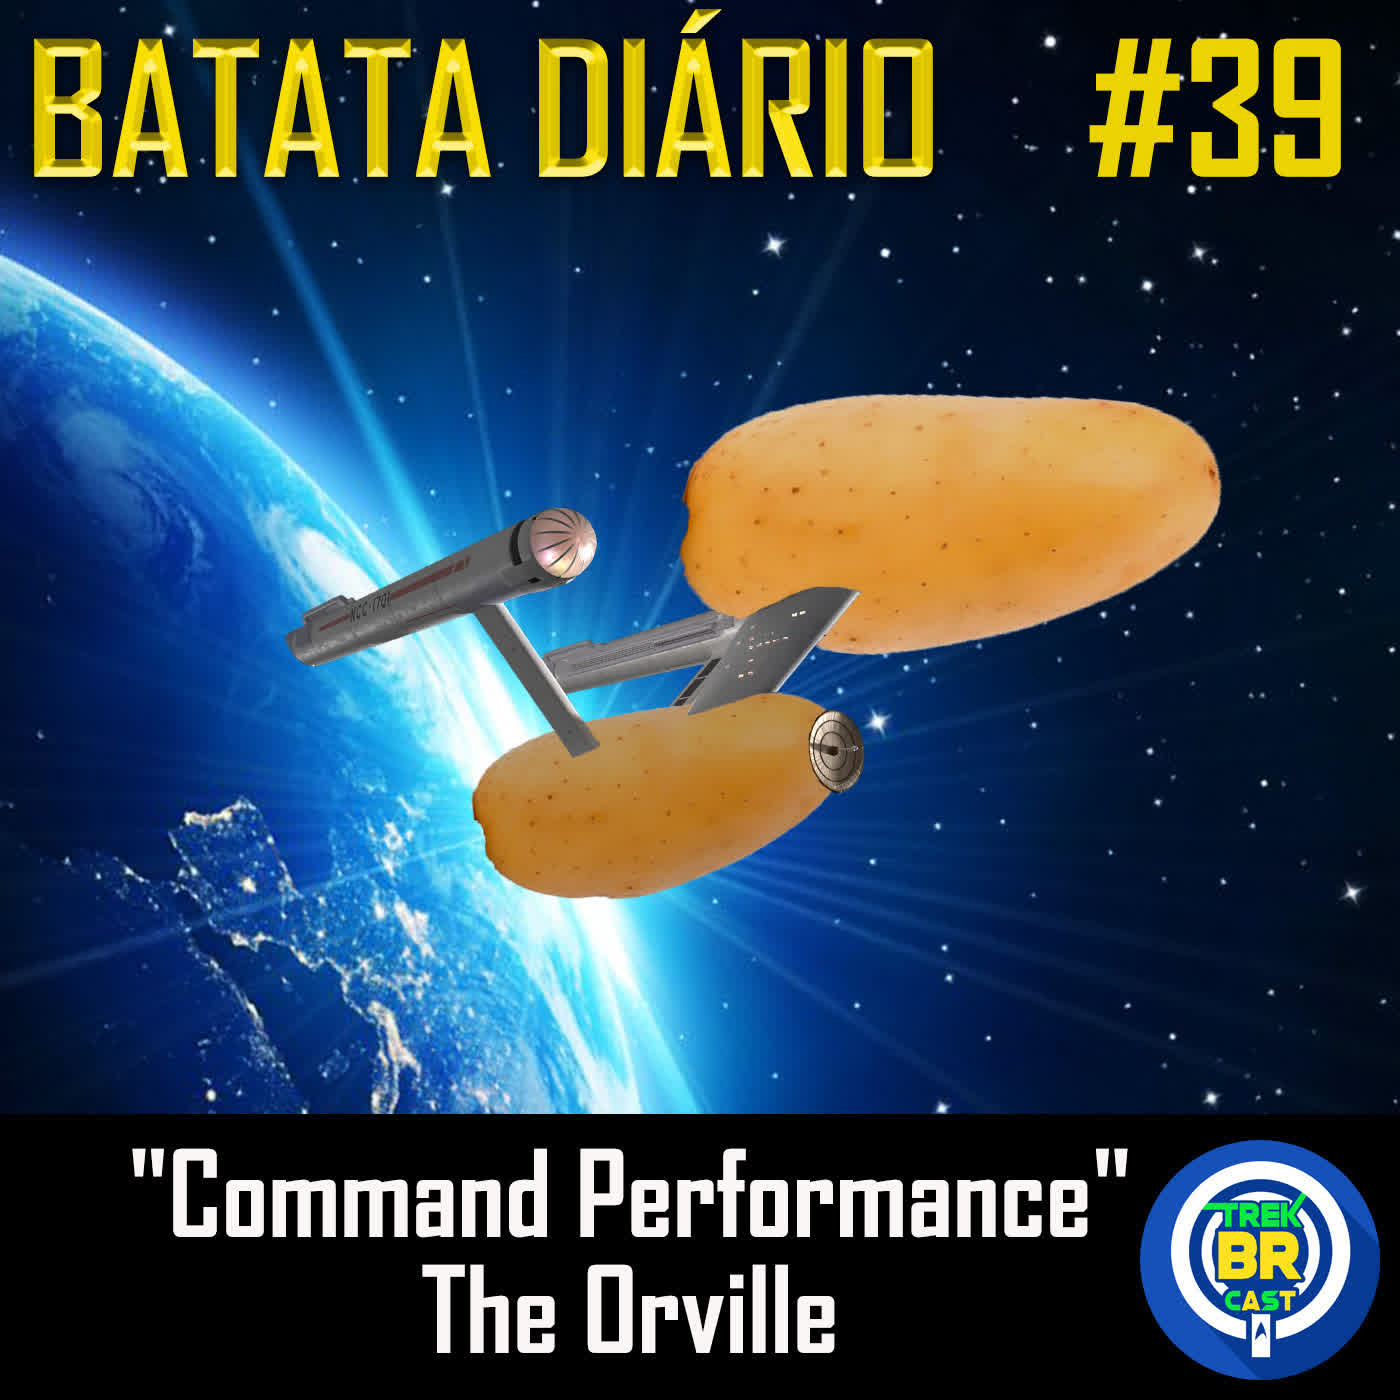 """Command Performance"" The Orville - Batata Diário Ep86"